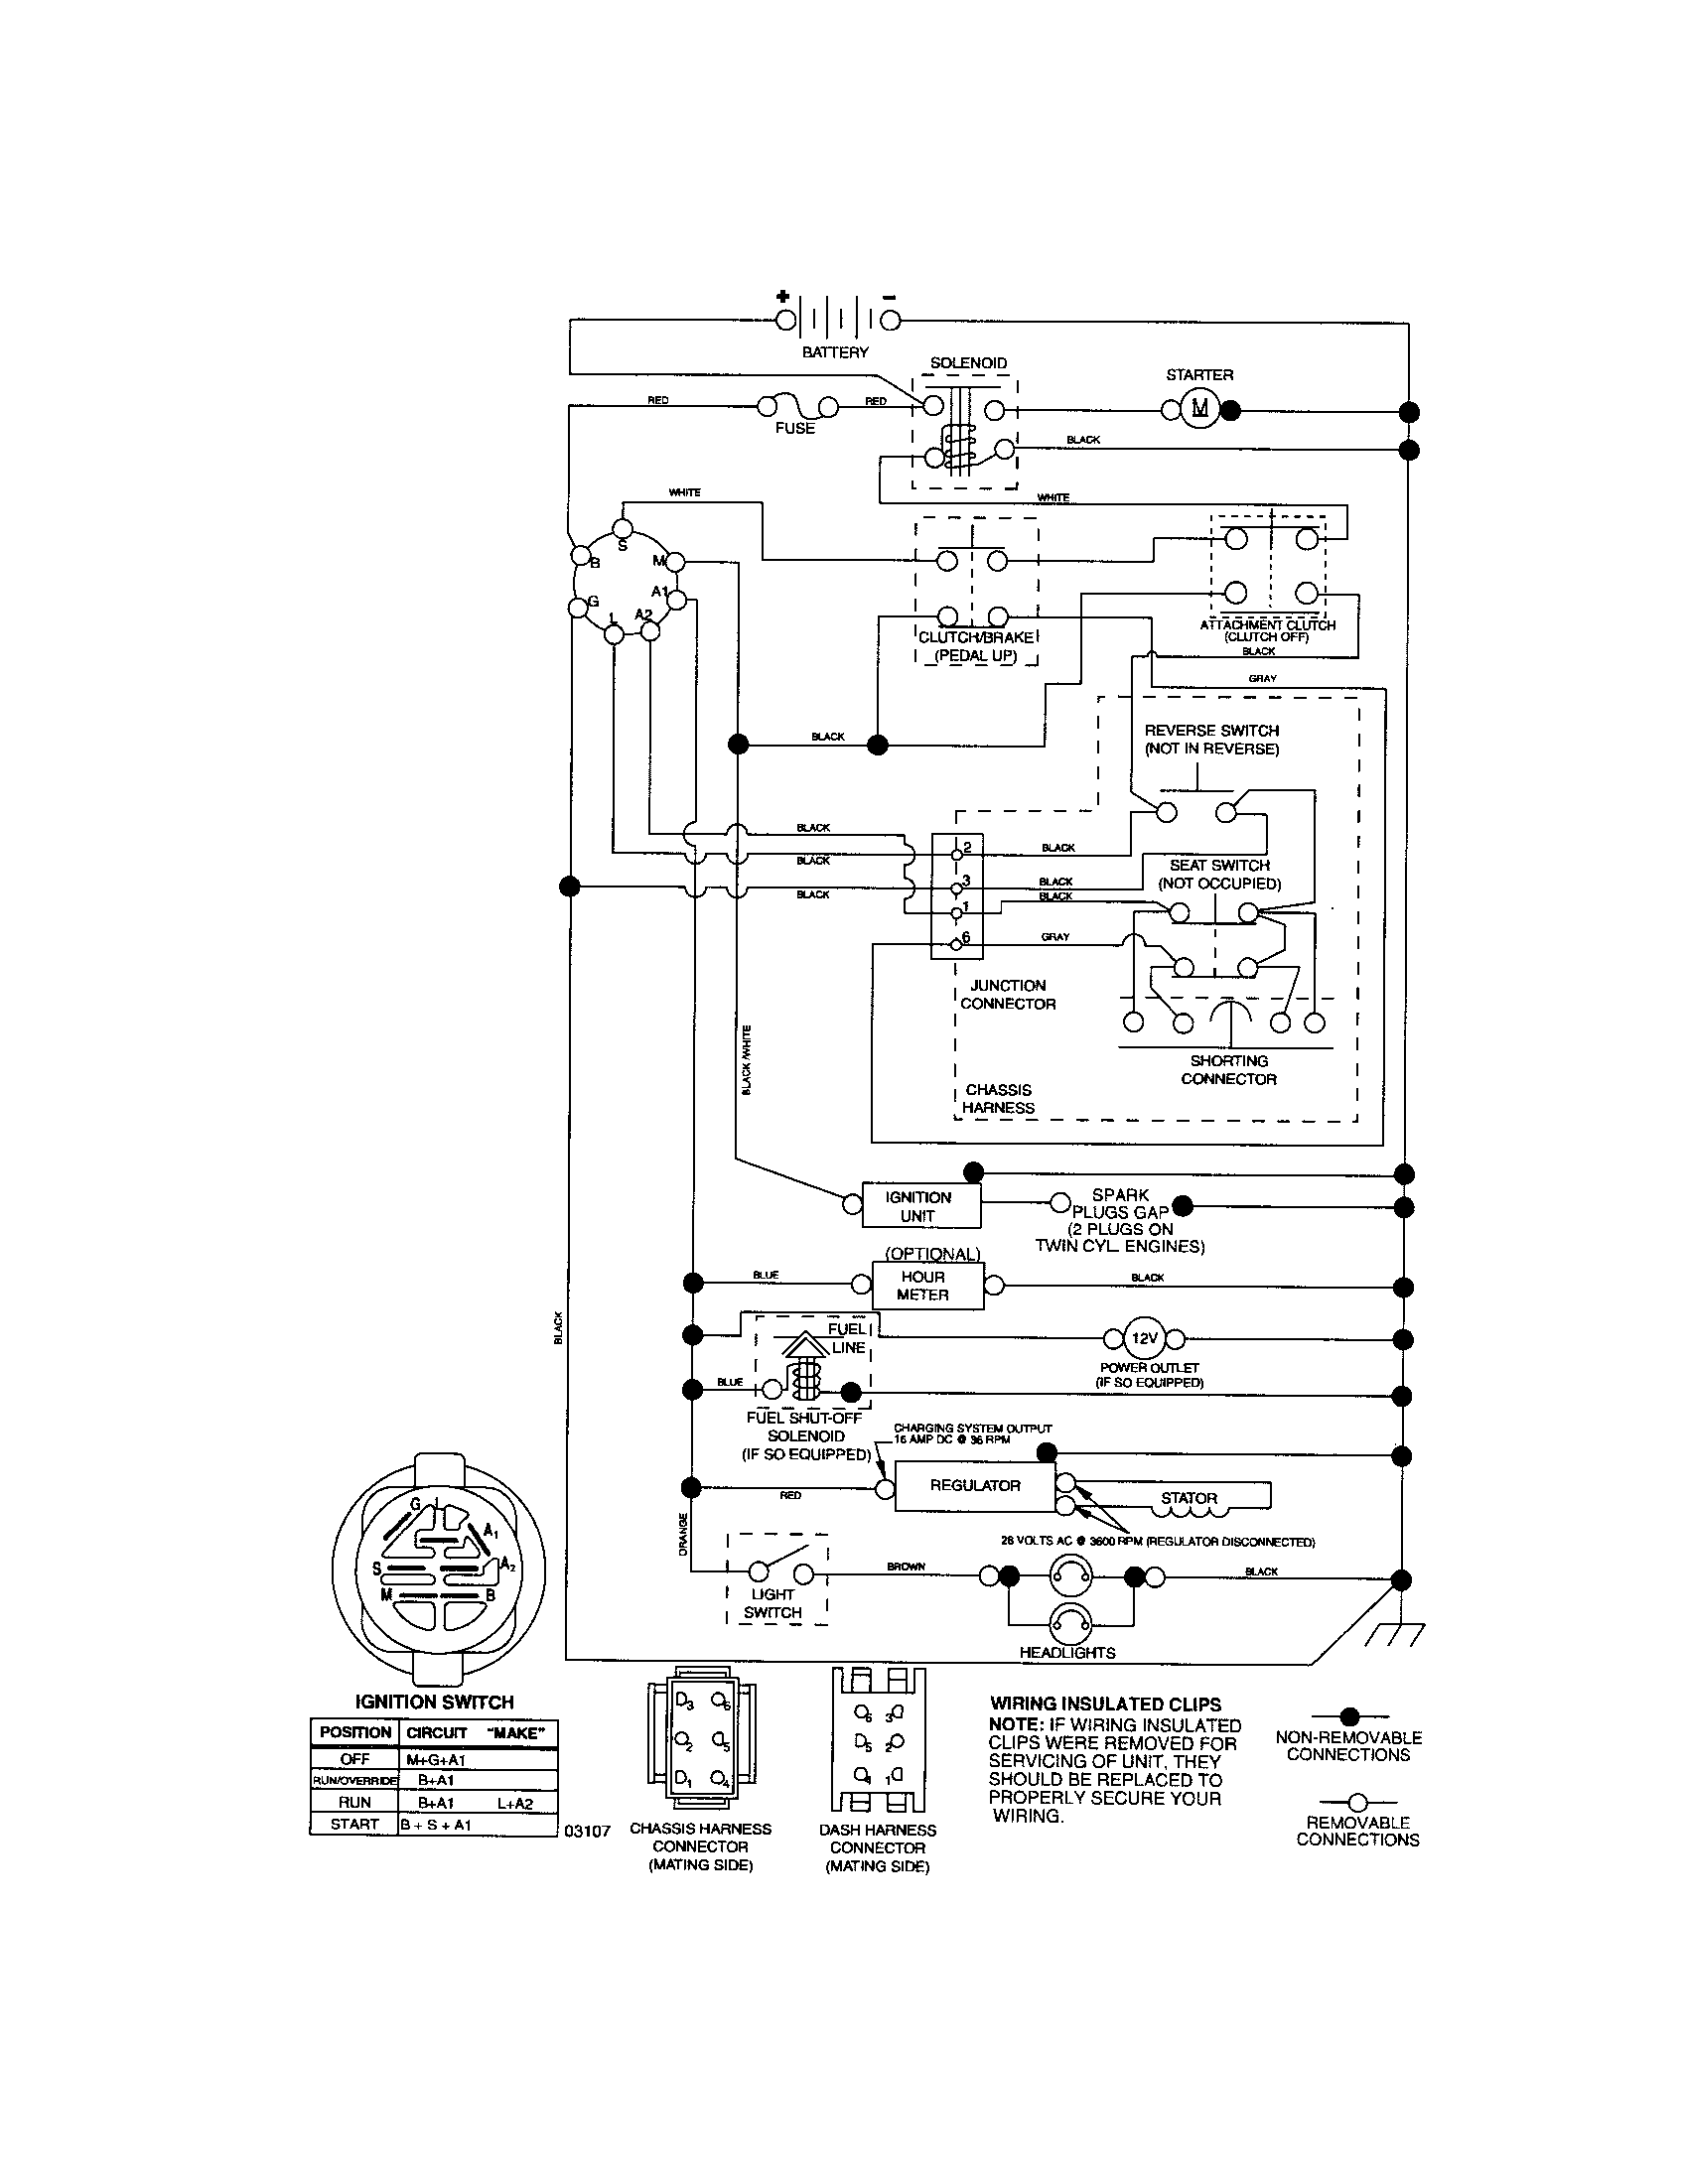 craftsman riding mower electrical diagram wiring diagram craftsman go back gt gallery for gt briggs and stratton carburetor linkage diagram [ 1696 x 2200 Pixel ]